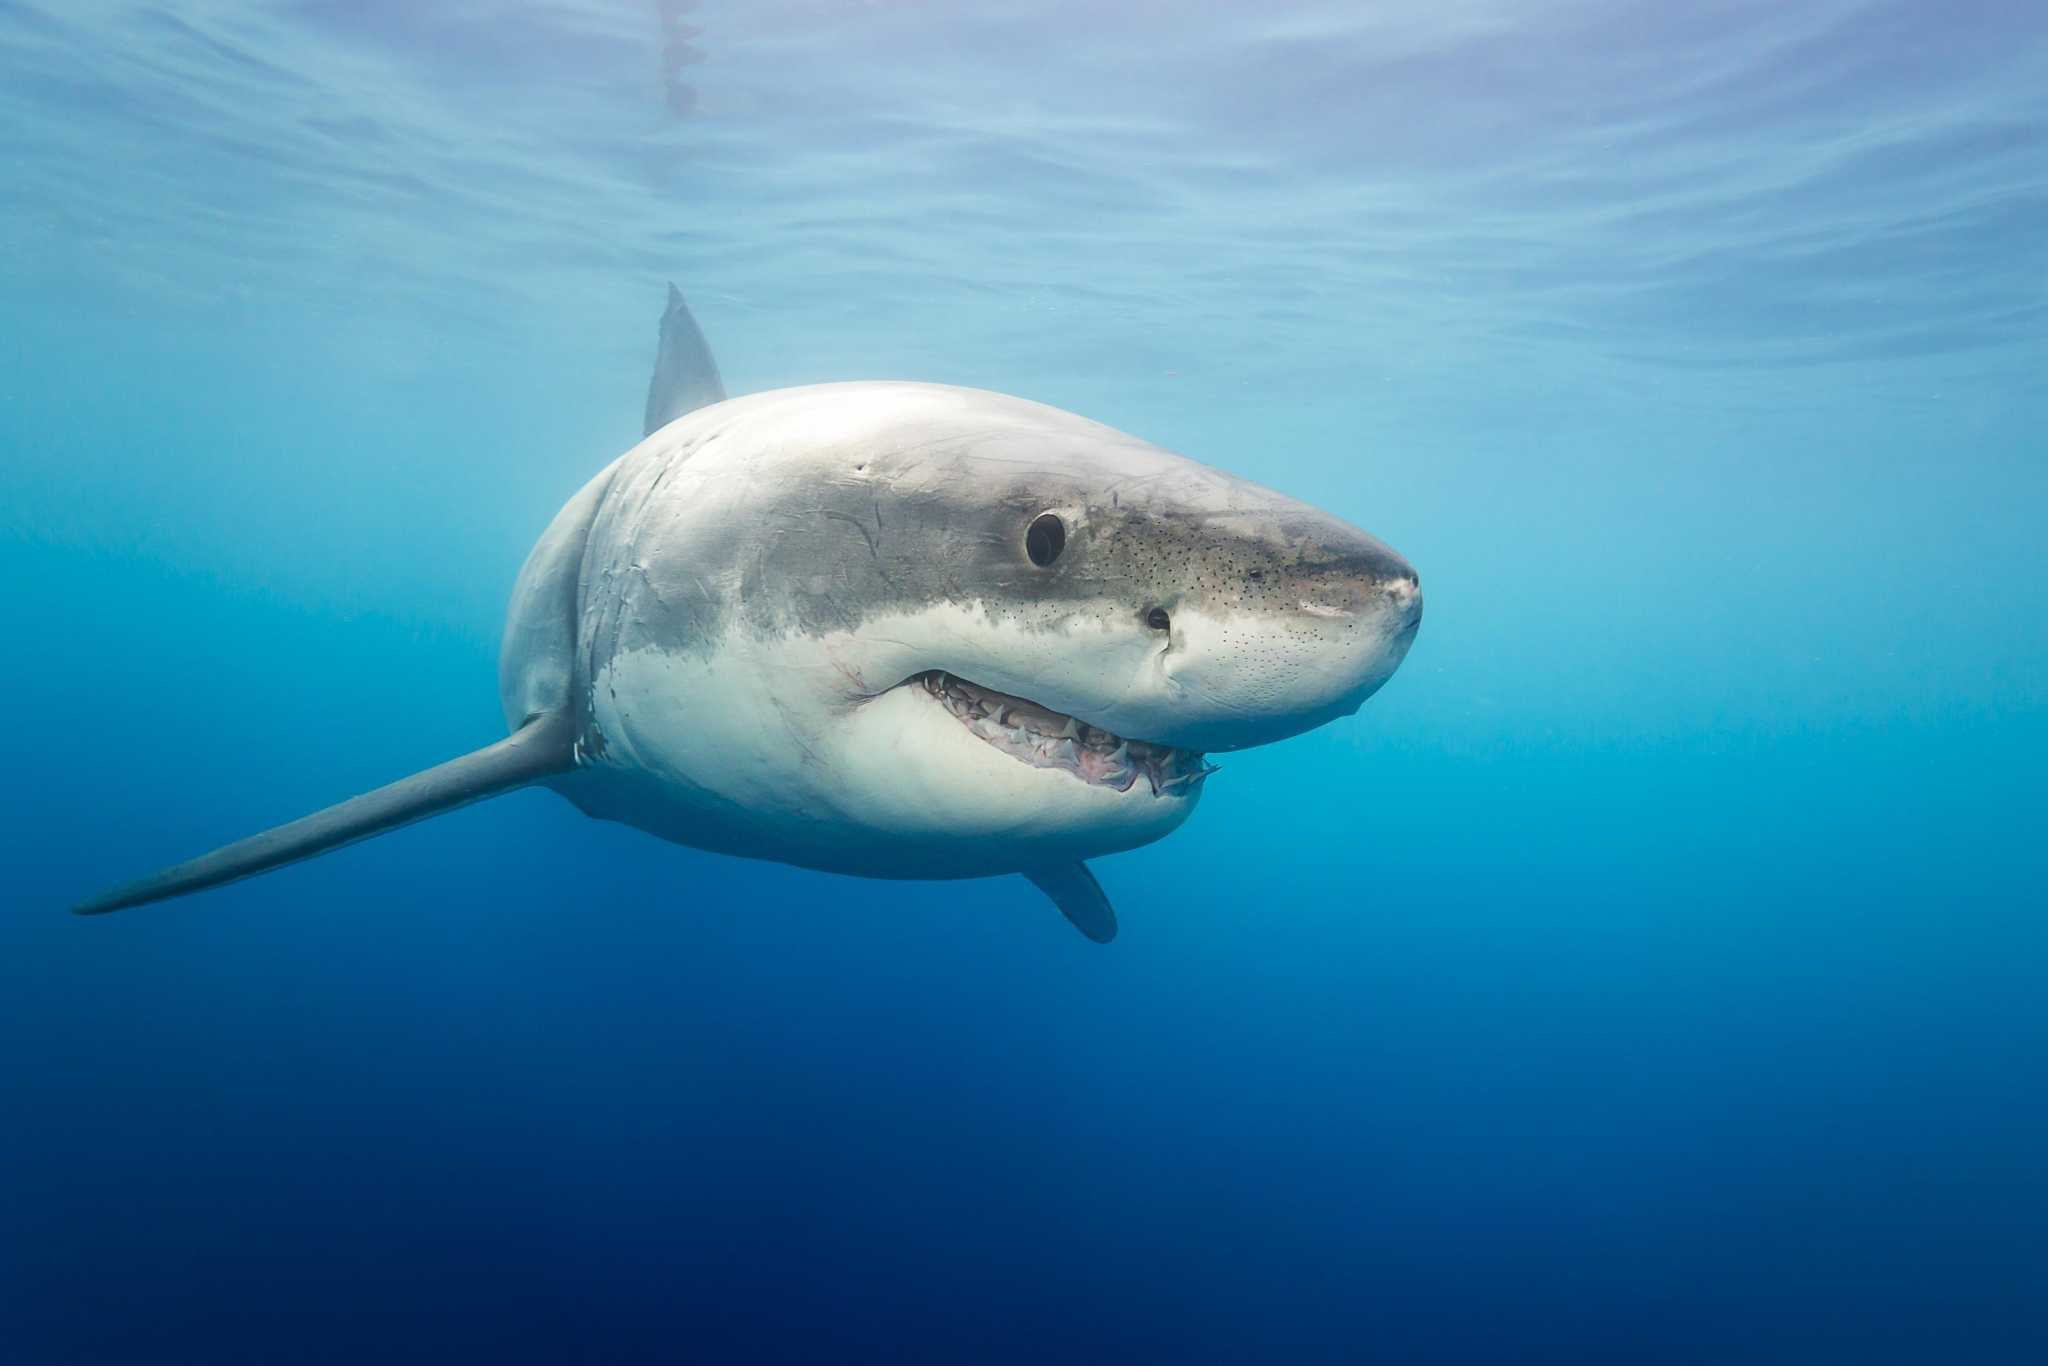 There are so many great whites at Santa Cruz beaches, locals are calling it 'shark park'